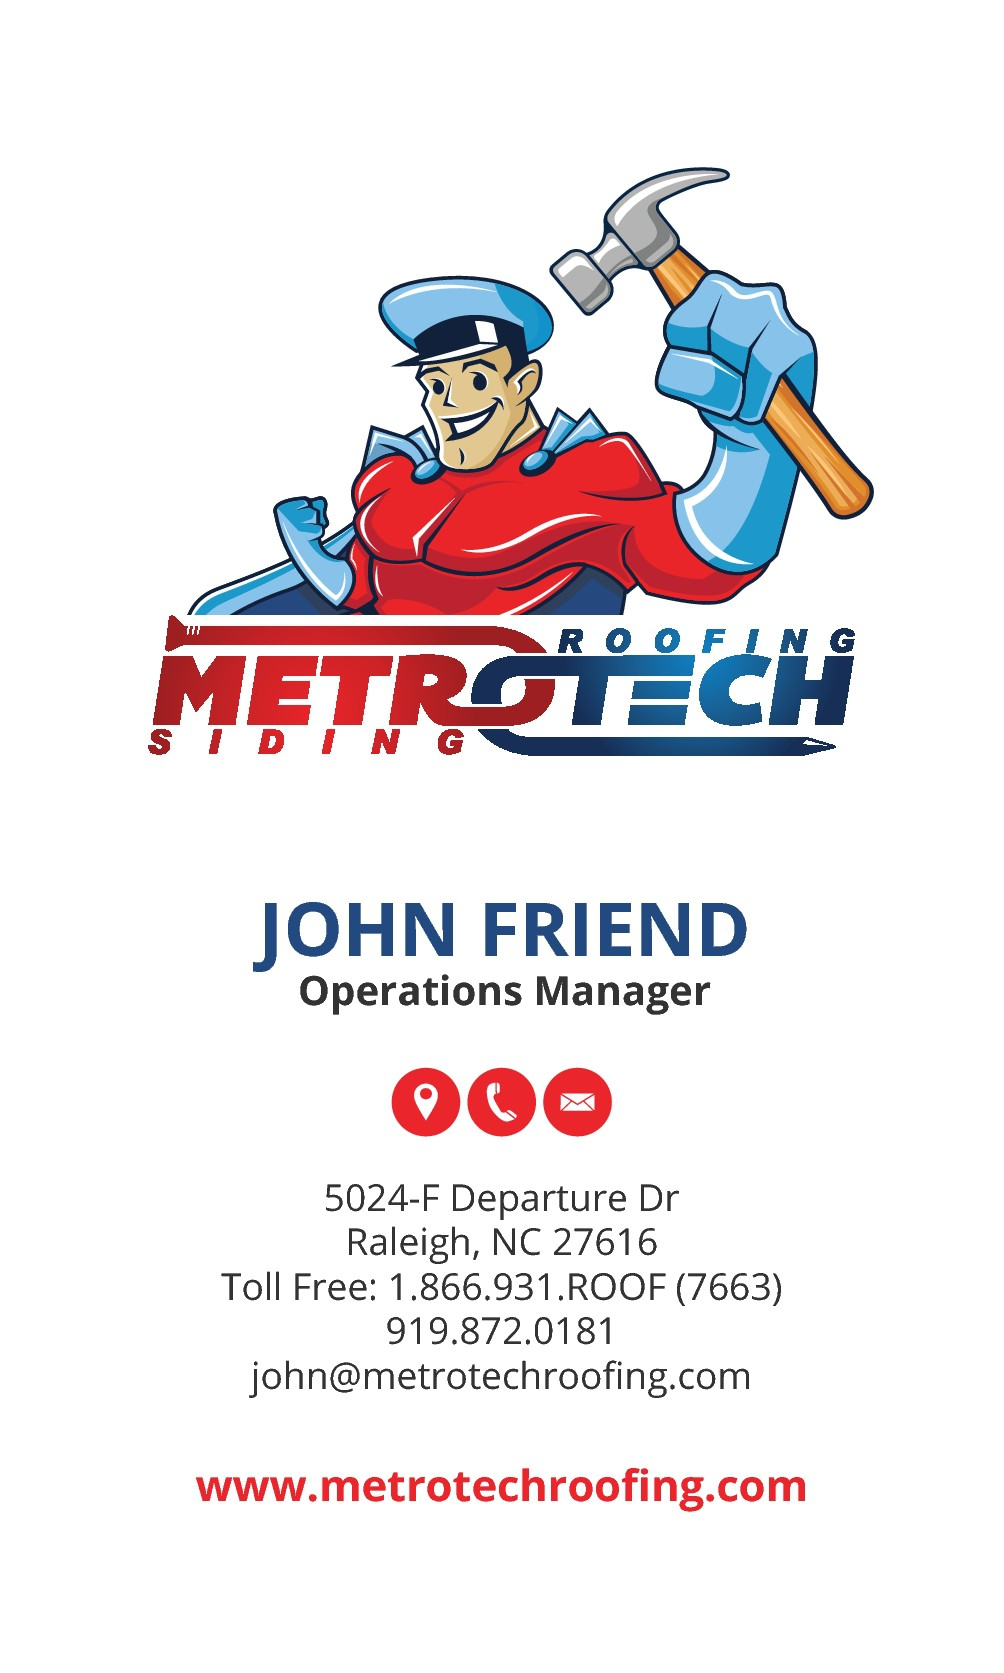 kick-azz business card. METROTECH Roofing Corp